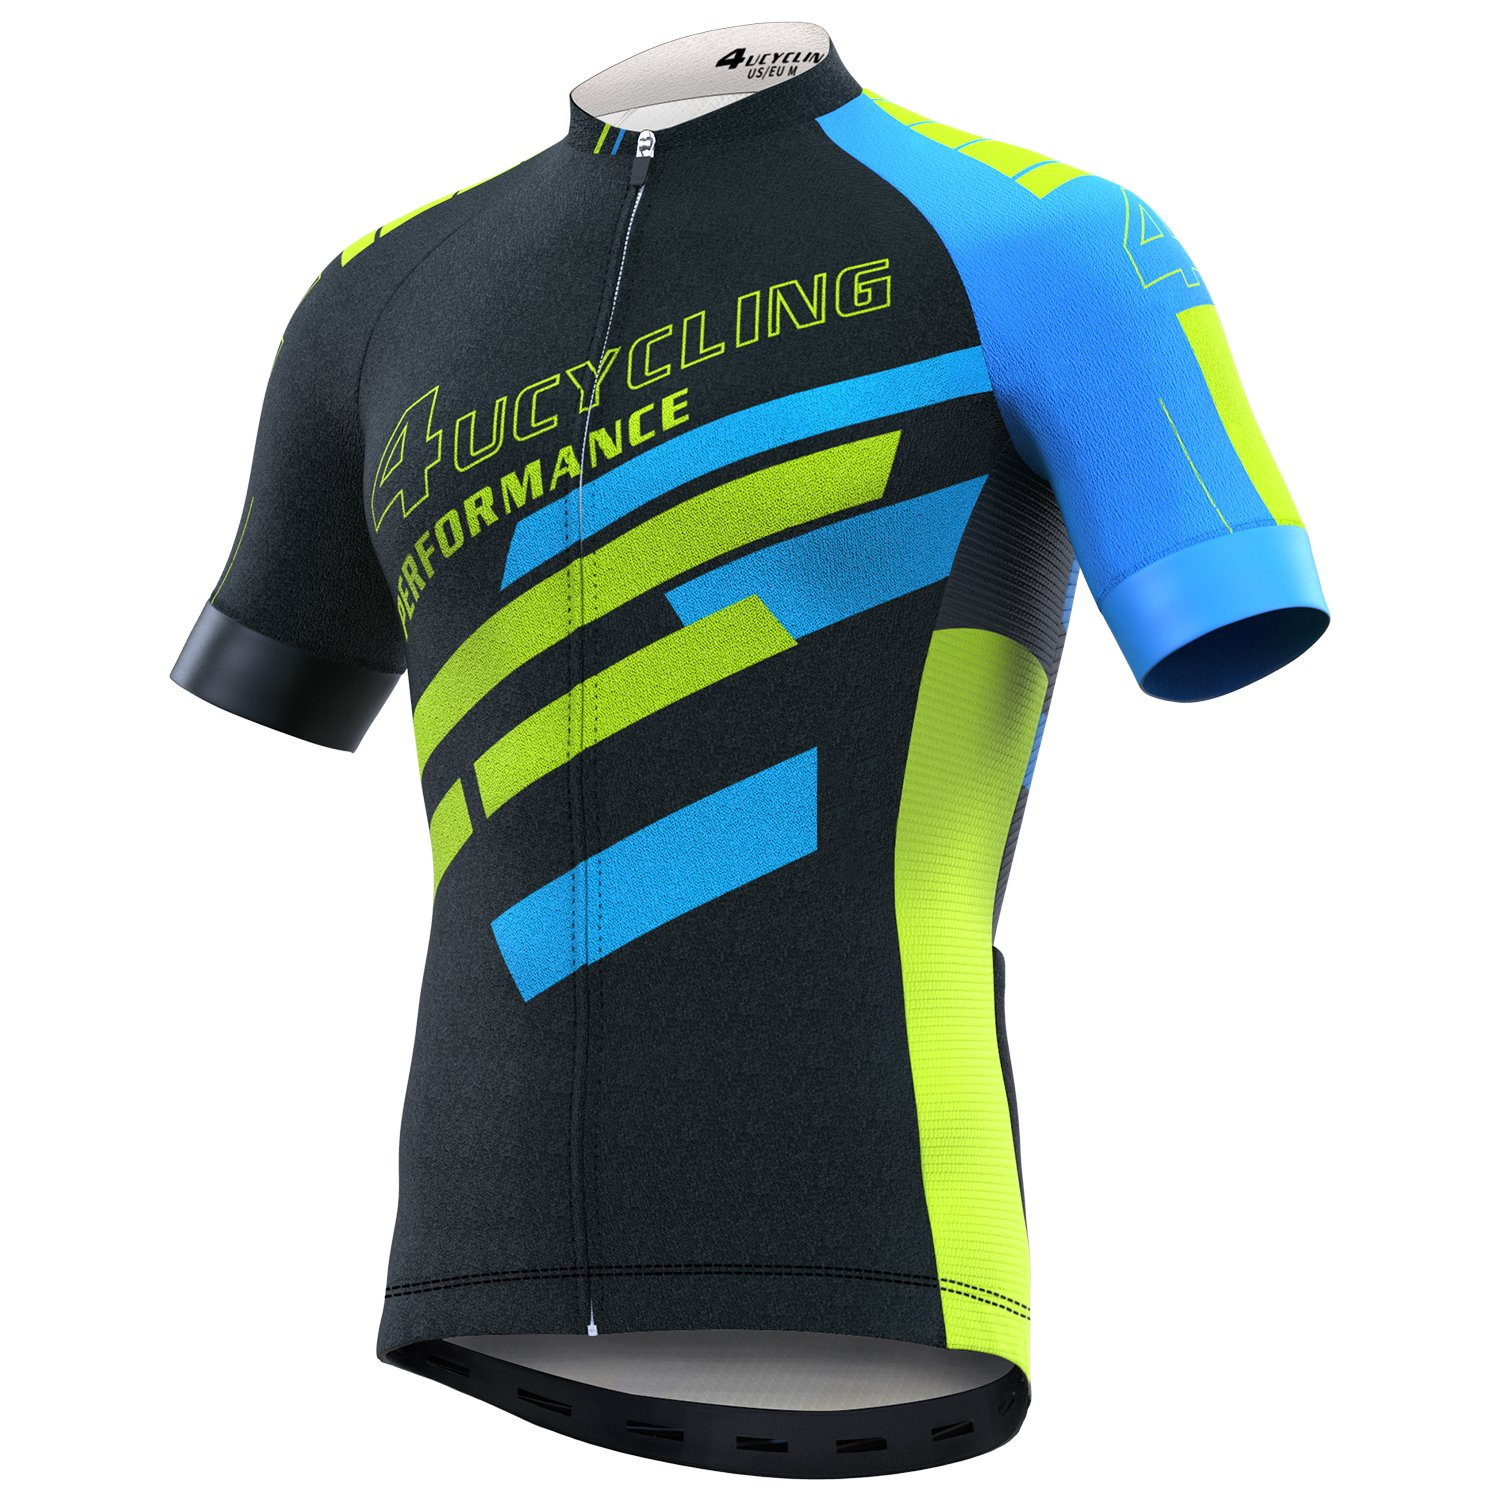 Men's Short Sleeve Cycling Jersey Full Zip Moisture Wicking, Breathable Running Tops - Bike Biking Shirt Dynamic Small